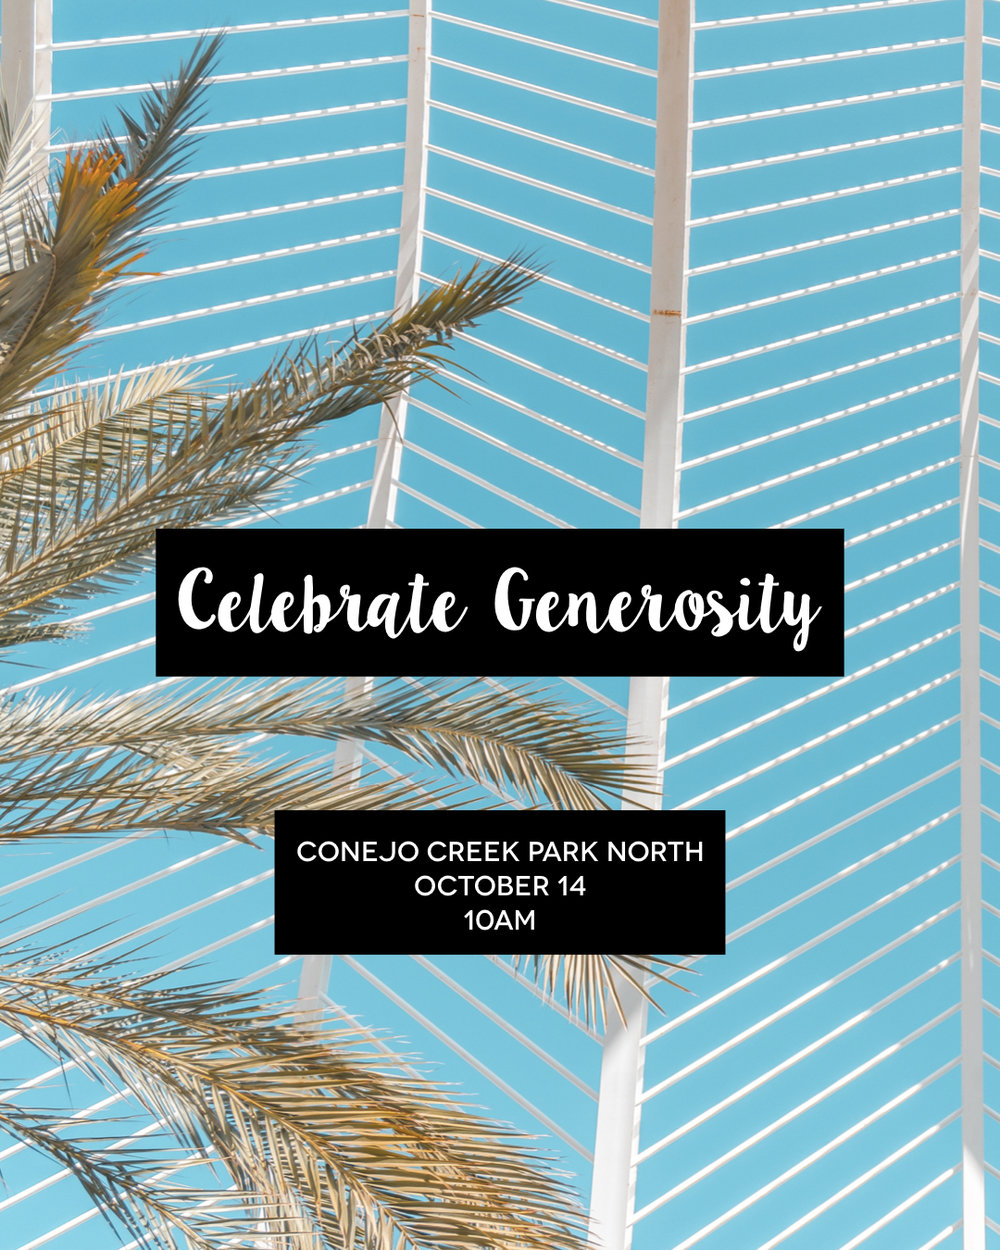 Celebrate Generosity - Each year, we celebrate our anniversary by taking every penny that comes in that week and giving it away. On October 14, the entire Anthem family of churches will gather together to worship Jesus and celebrate!Location: Conejo Creek Park NorthDay: Oct 14Time: 10am